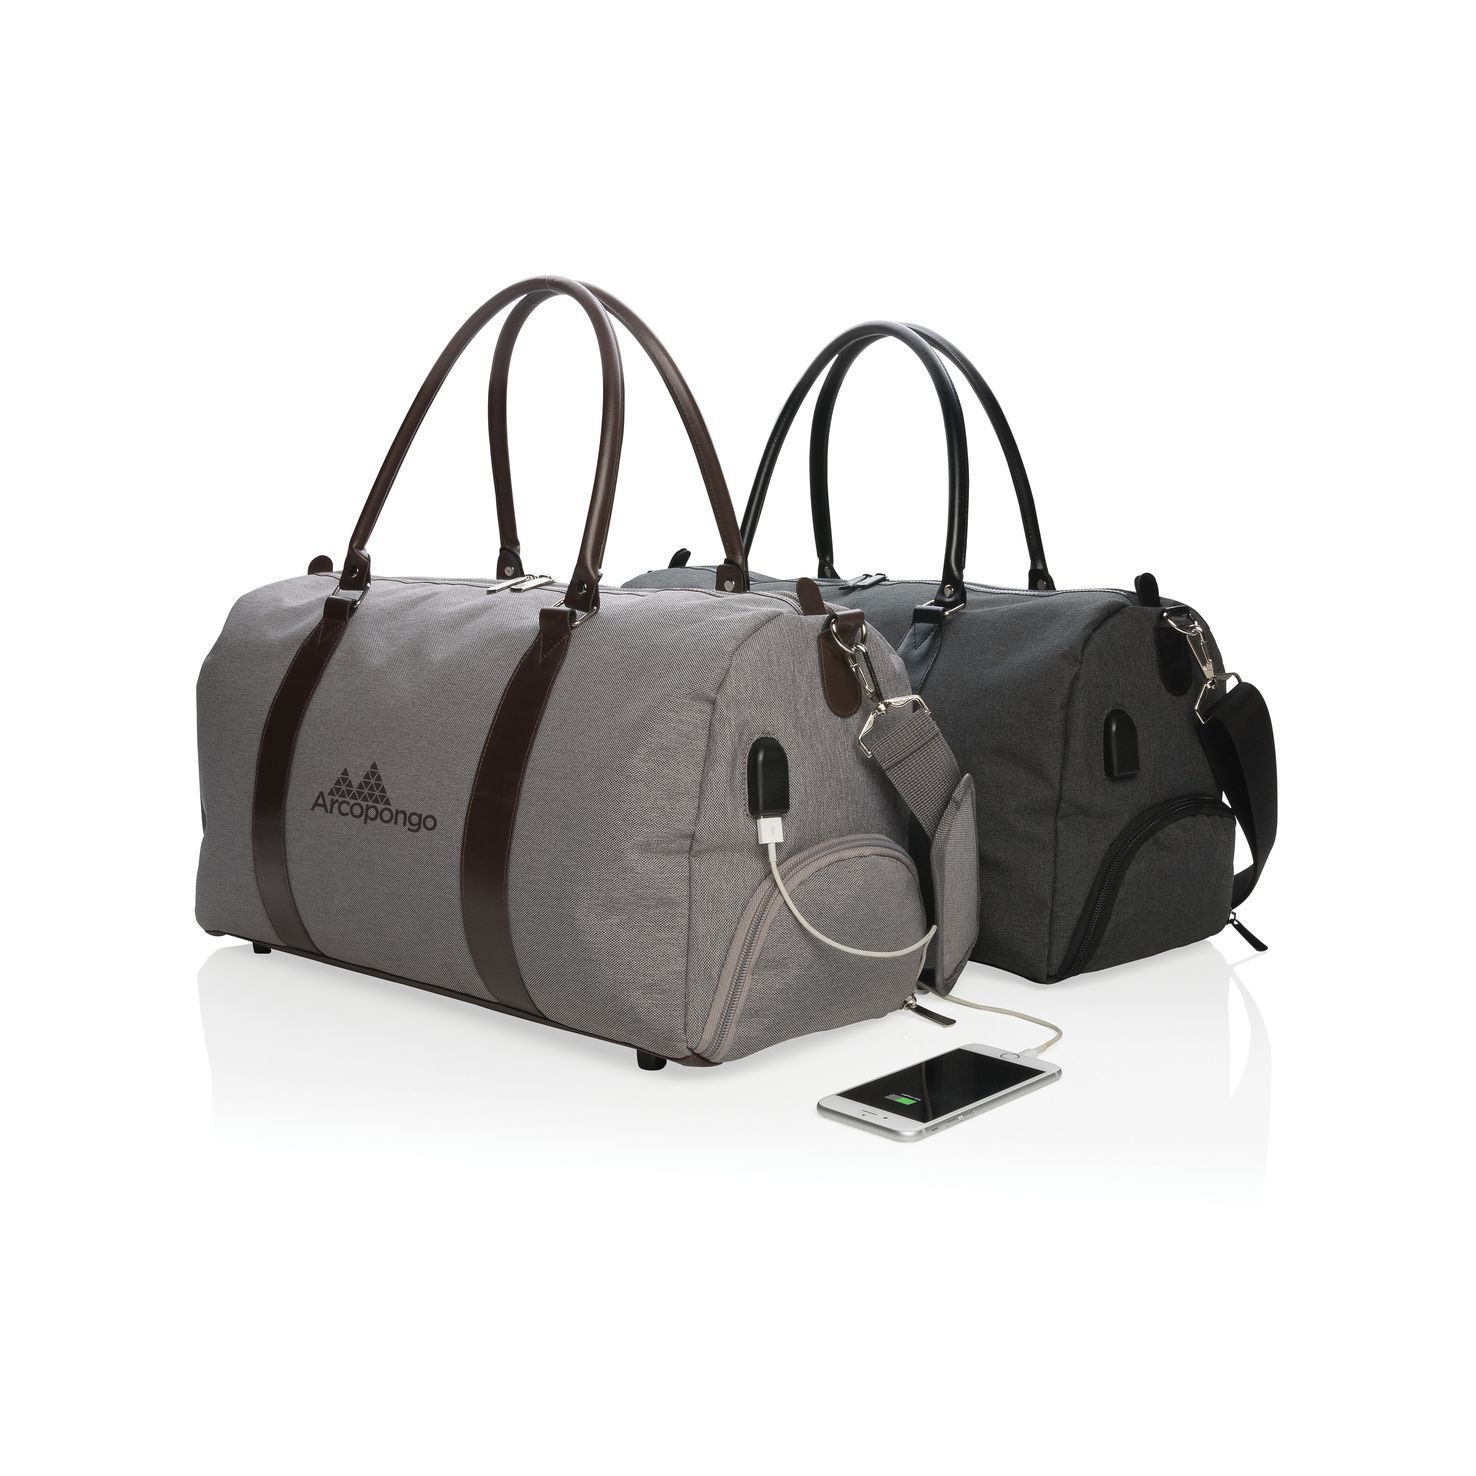 Luxe weekendtas | USB output | Polyester | 20 L